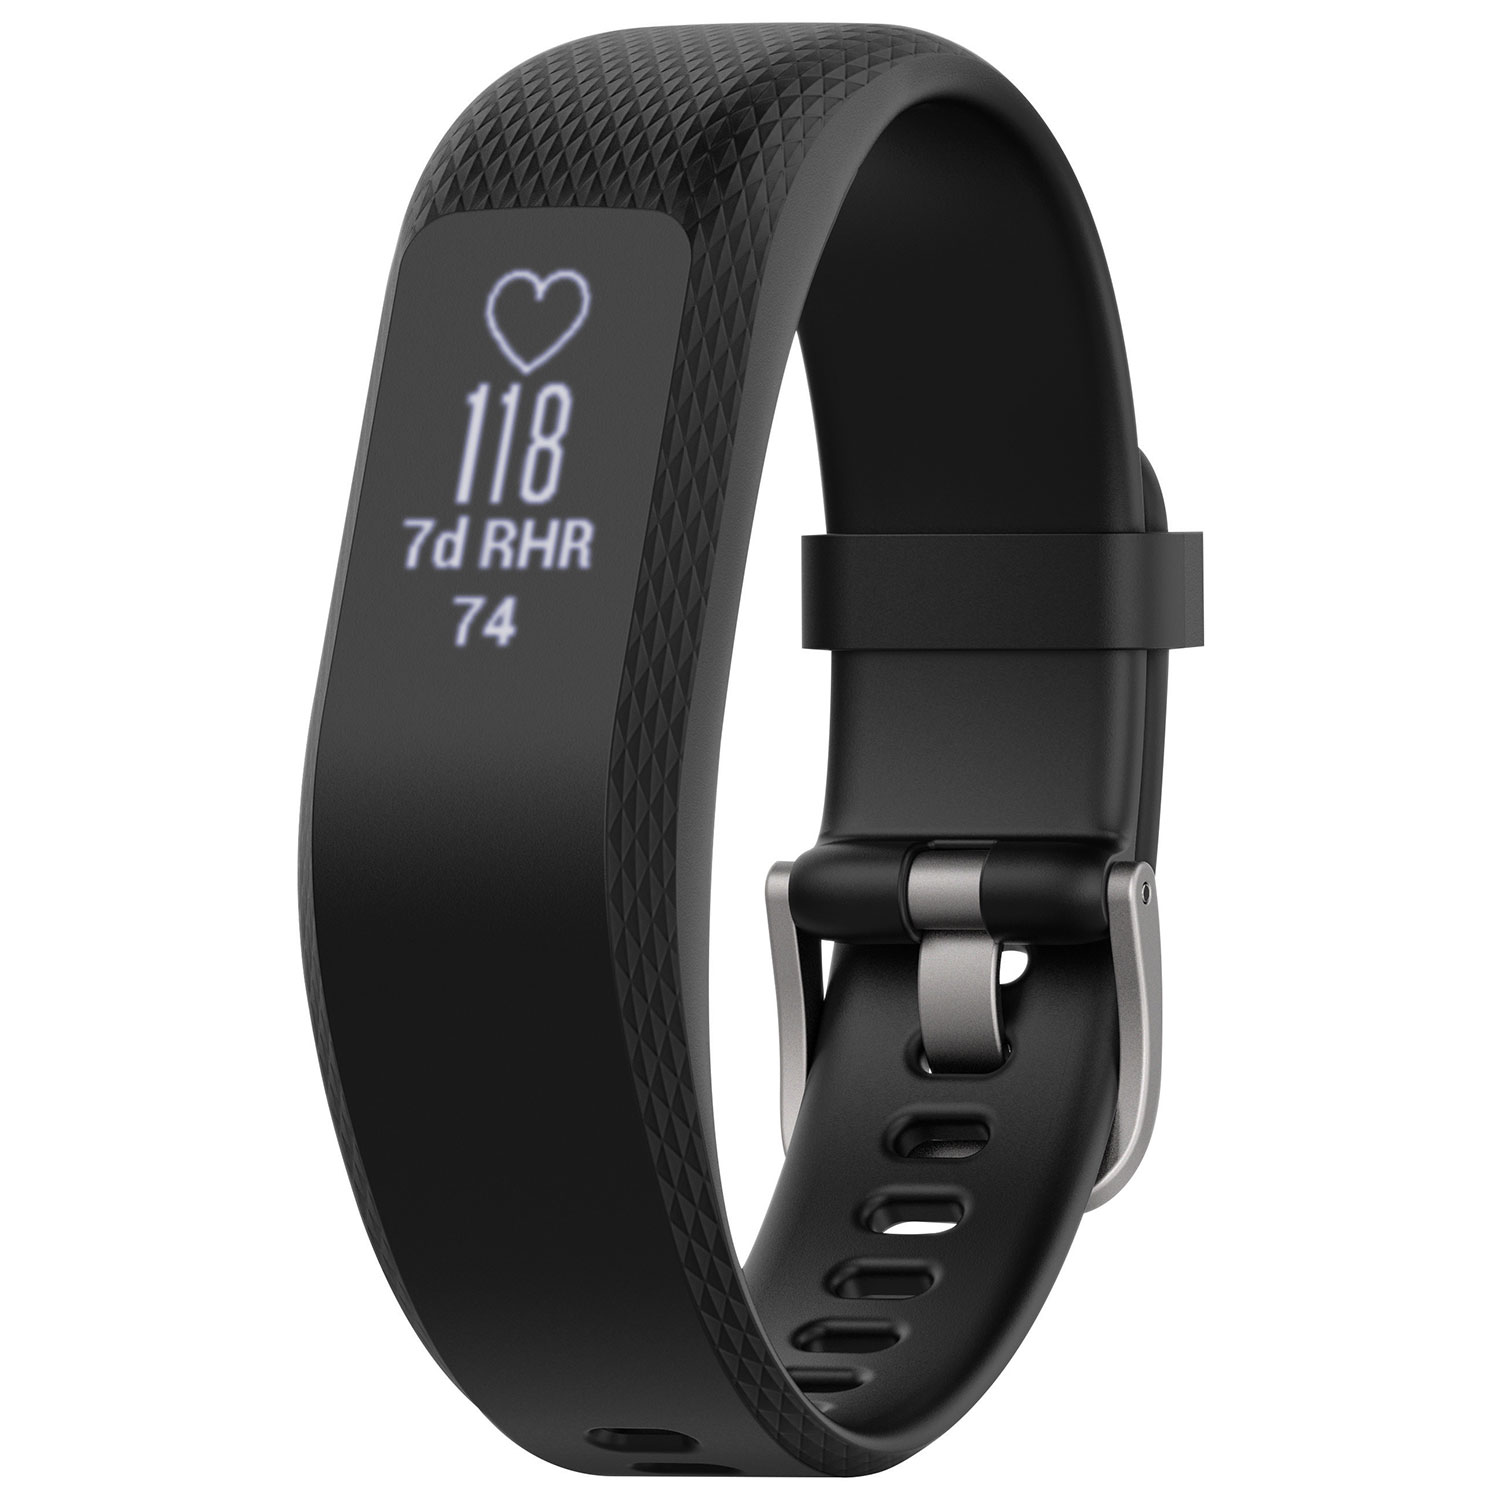 under rate watches fitness co monitor tracking trackers in uk the best tracker mpow with heart